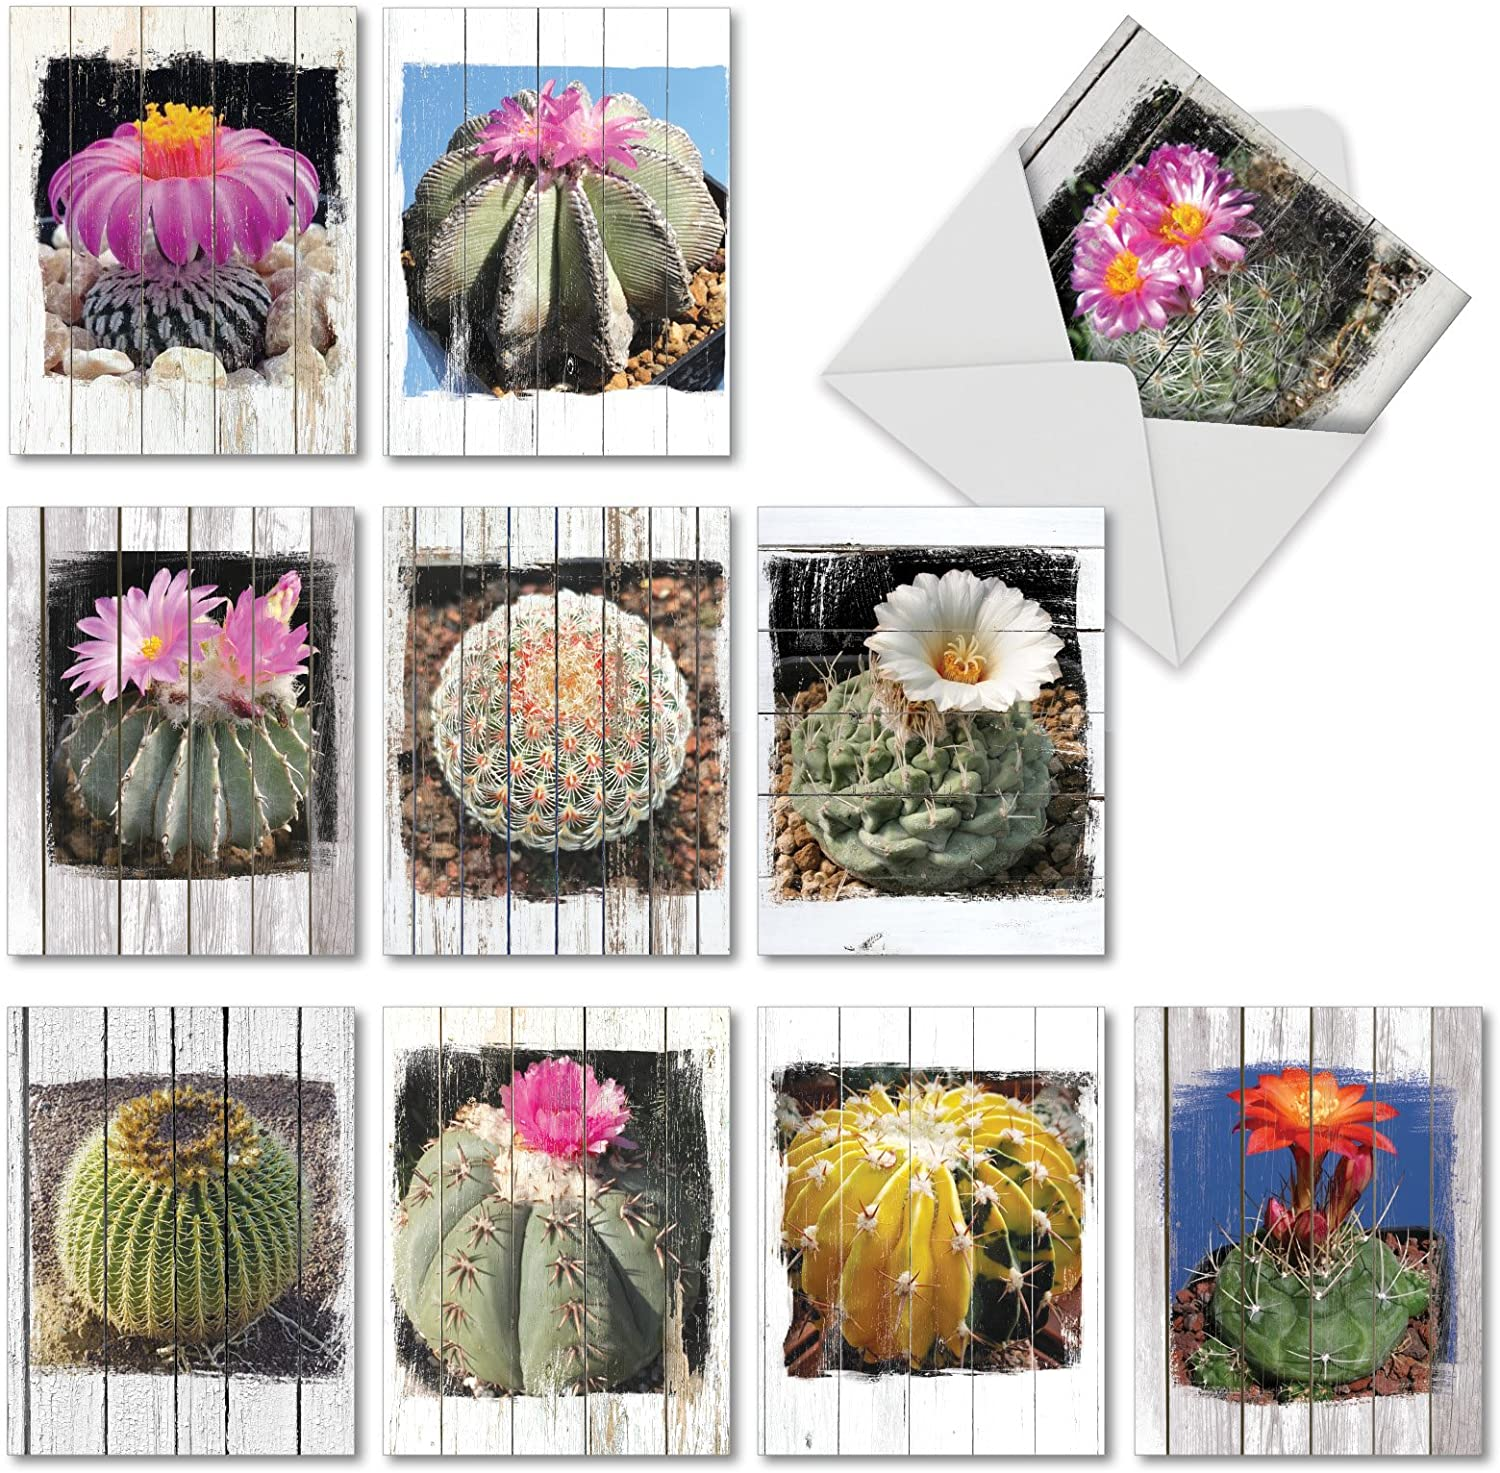 Flowering Cactus Spheres - 10 All Occasion Note Cards with Envelope (4 x 5.12 Inch) - Variety of Plant Images Appreciation Greeting Cards - Nature Stationery Notecard Pack Set AM6439OCB-B1x10